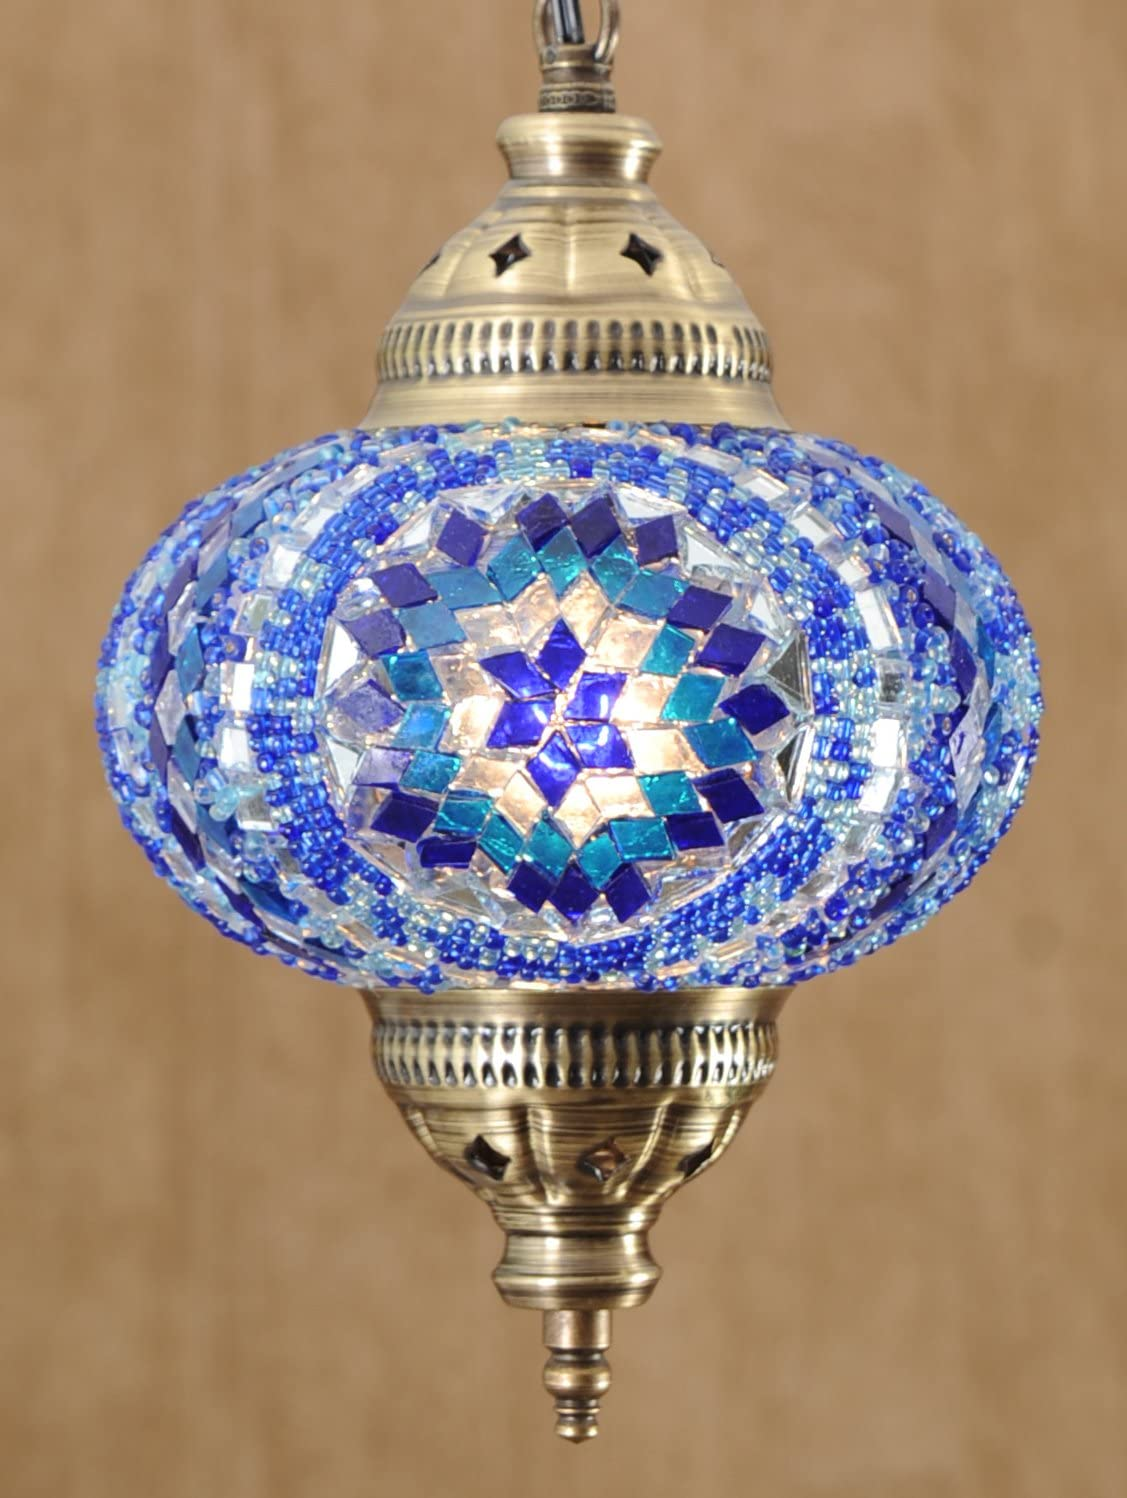 Turkish Moroccan Mosaic Glass Handmade Ceiling Pendant Fixture Hanging Lamp Light,7 Ocean